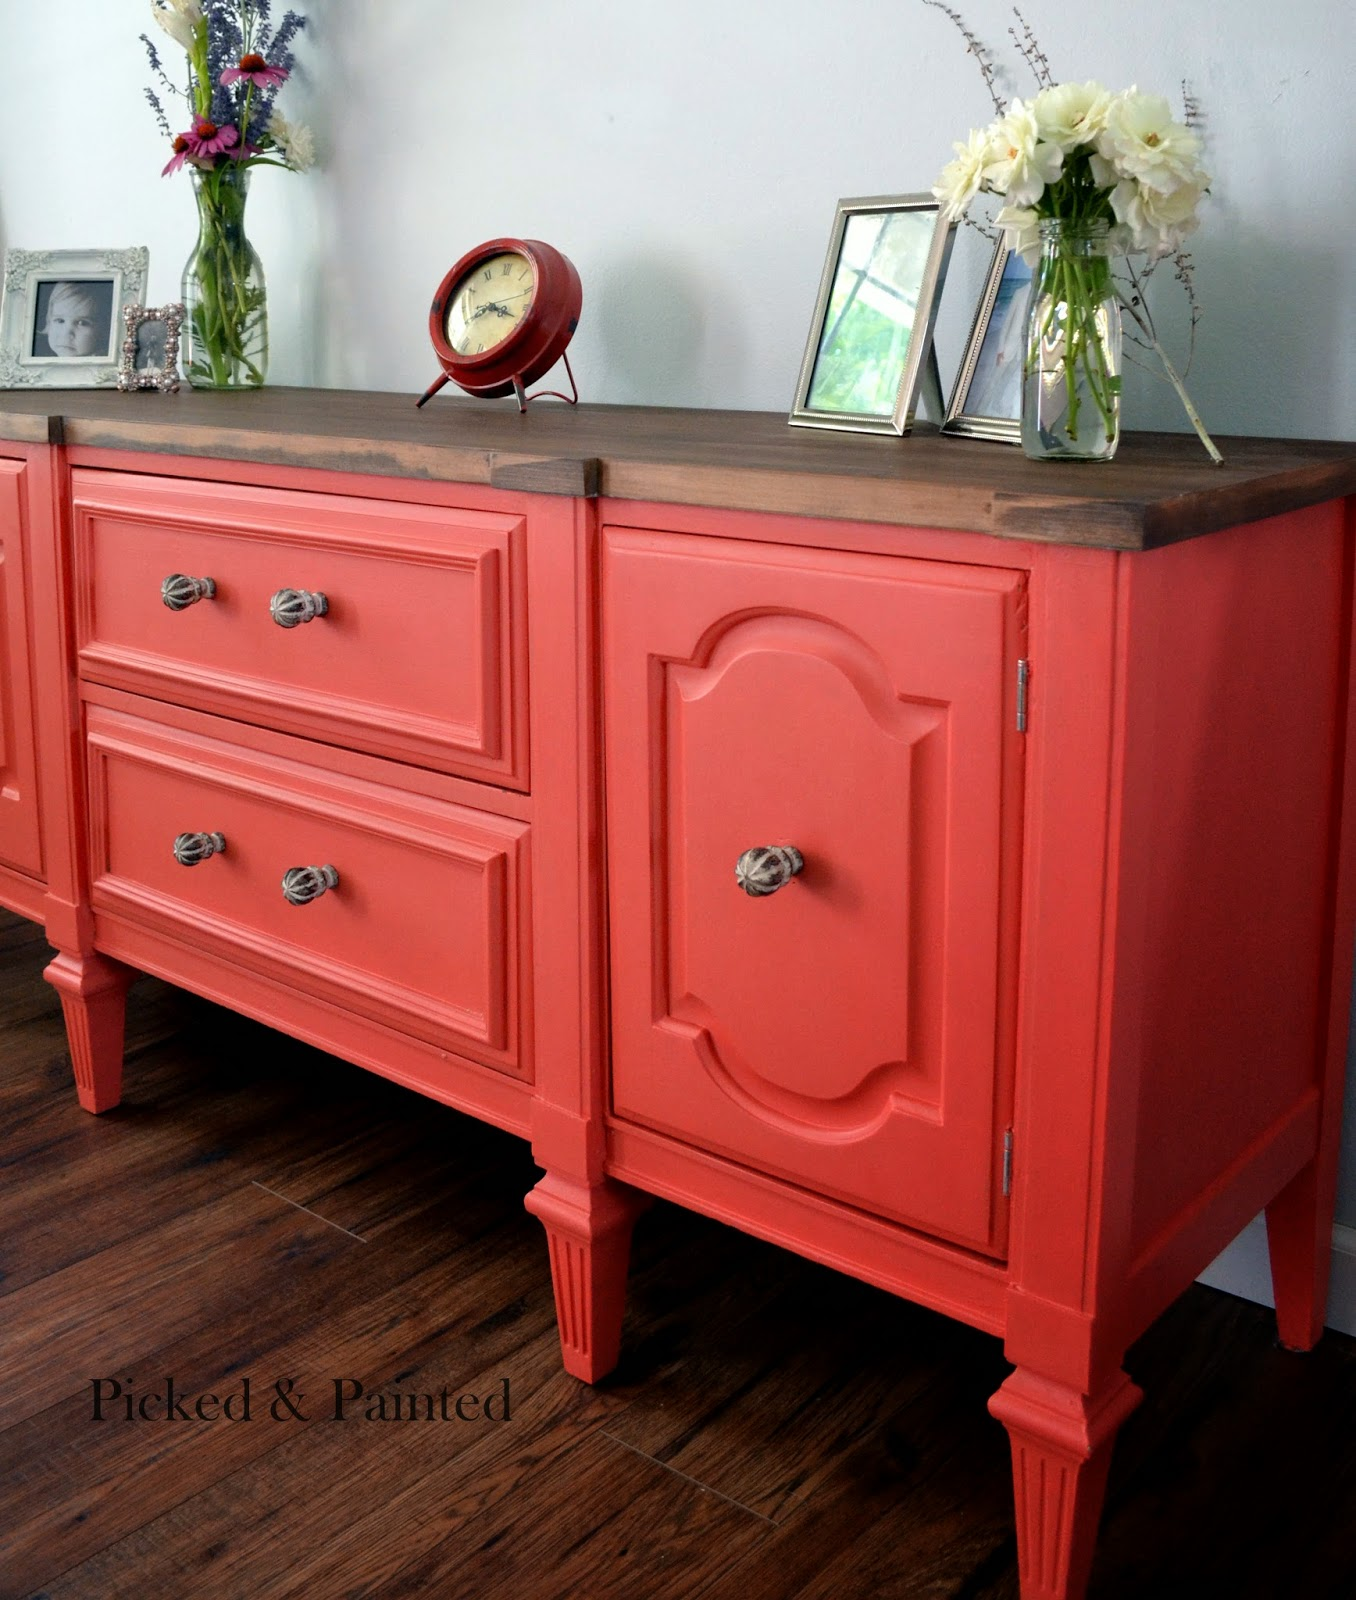 Painted Buffet Stained Top Picked And Painted.jpg. Full resolution  portrait, nominally Width 1356 Height 1600 pixels, portrait with #AA2921.